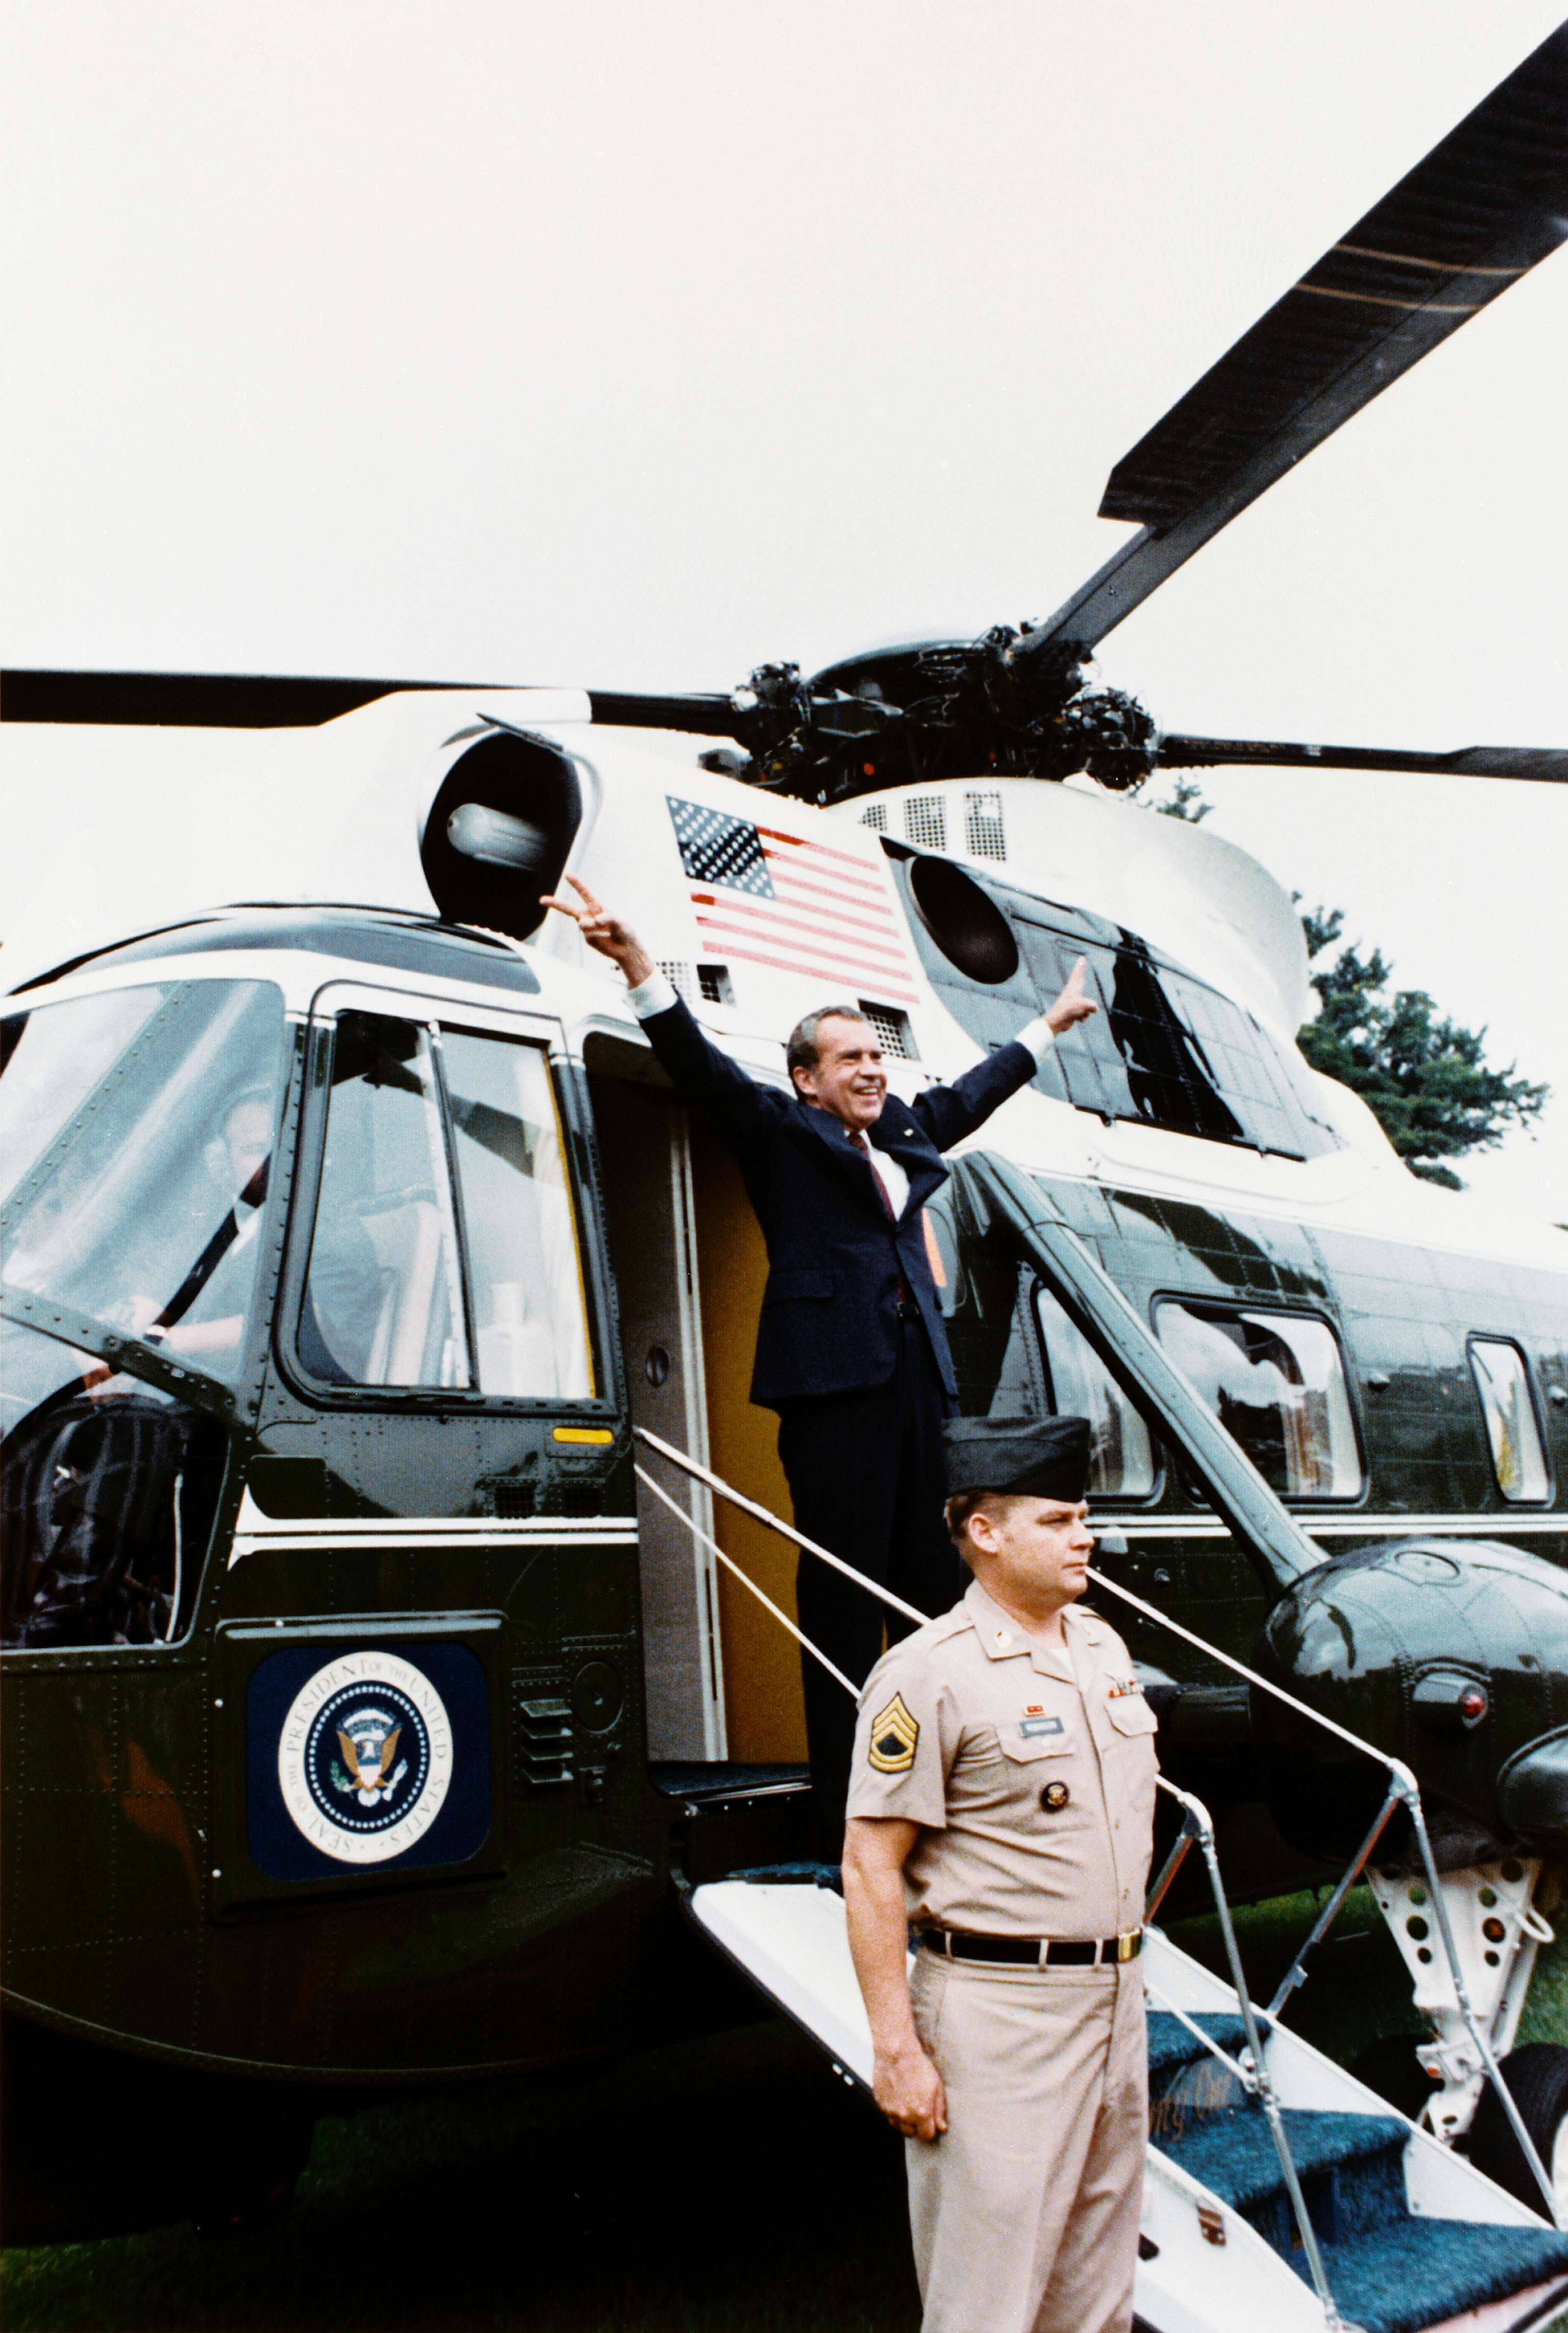 Richard Nixon boarding Army One upon his departure from the White House after resigning the office of President of the United States following the Watergate Scandal on August 9, 1974.